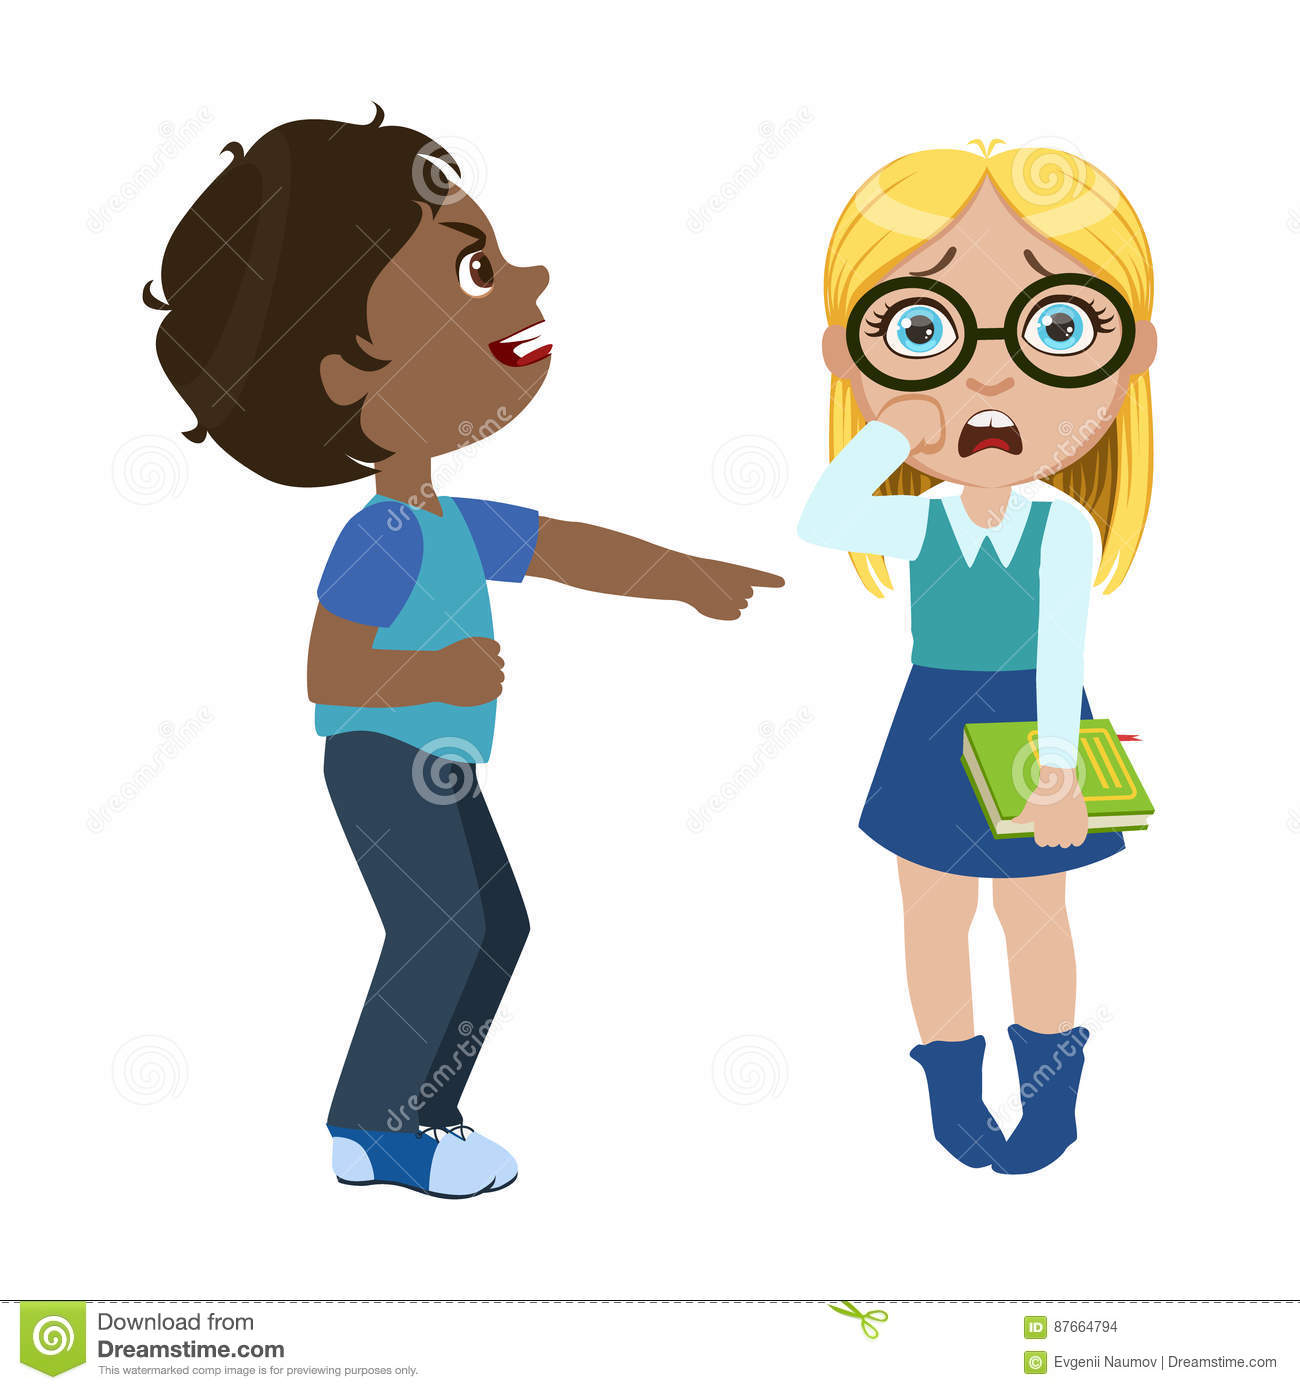 Boy Mocking A Girl, Part Of Bad Kids Behavior And Bullies Series Of Vector Illustrations With Characters Being Rude And